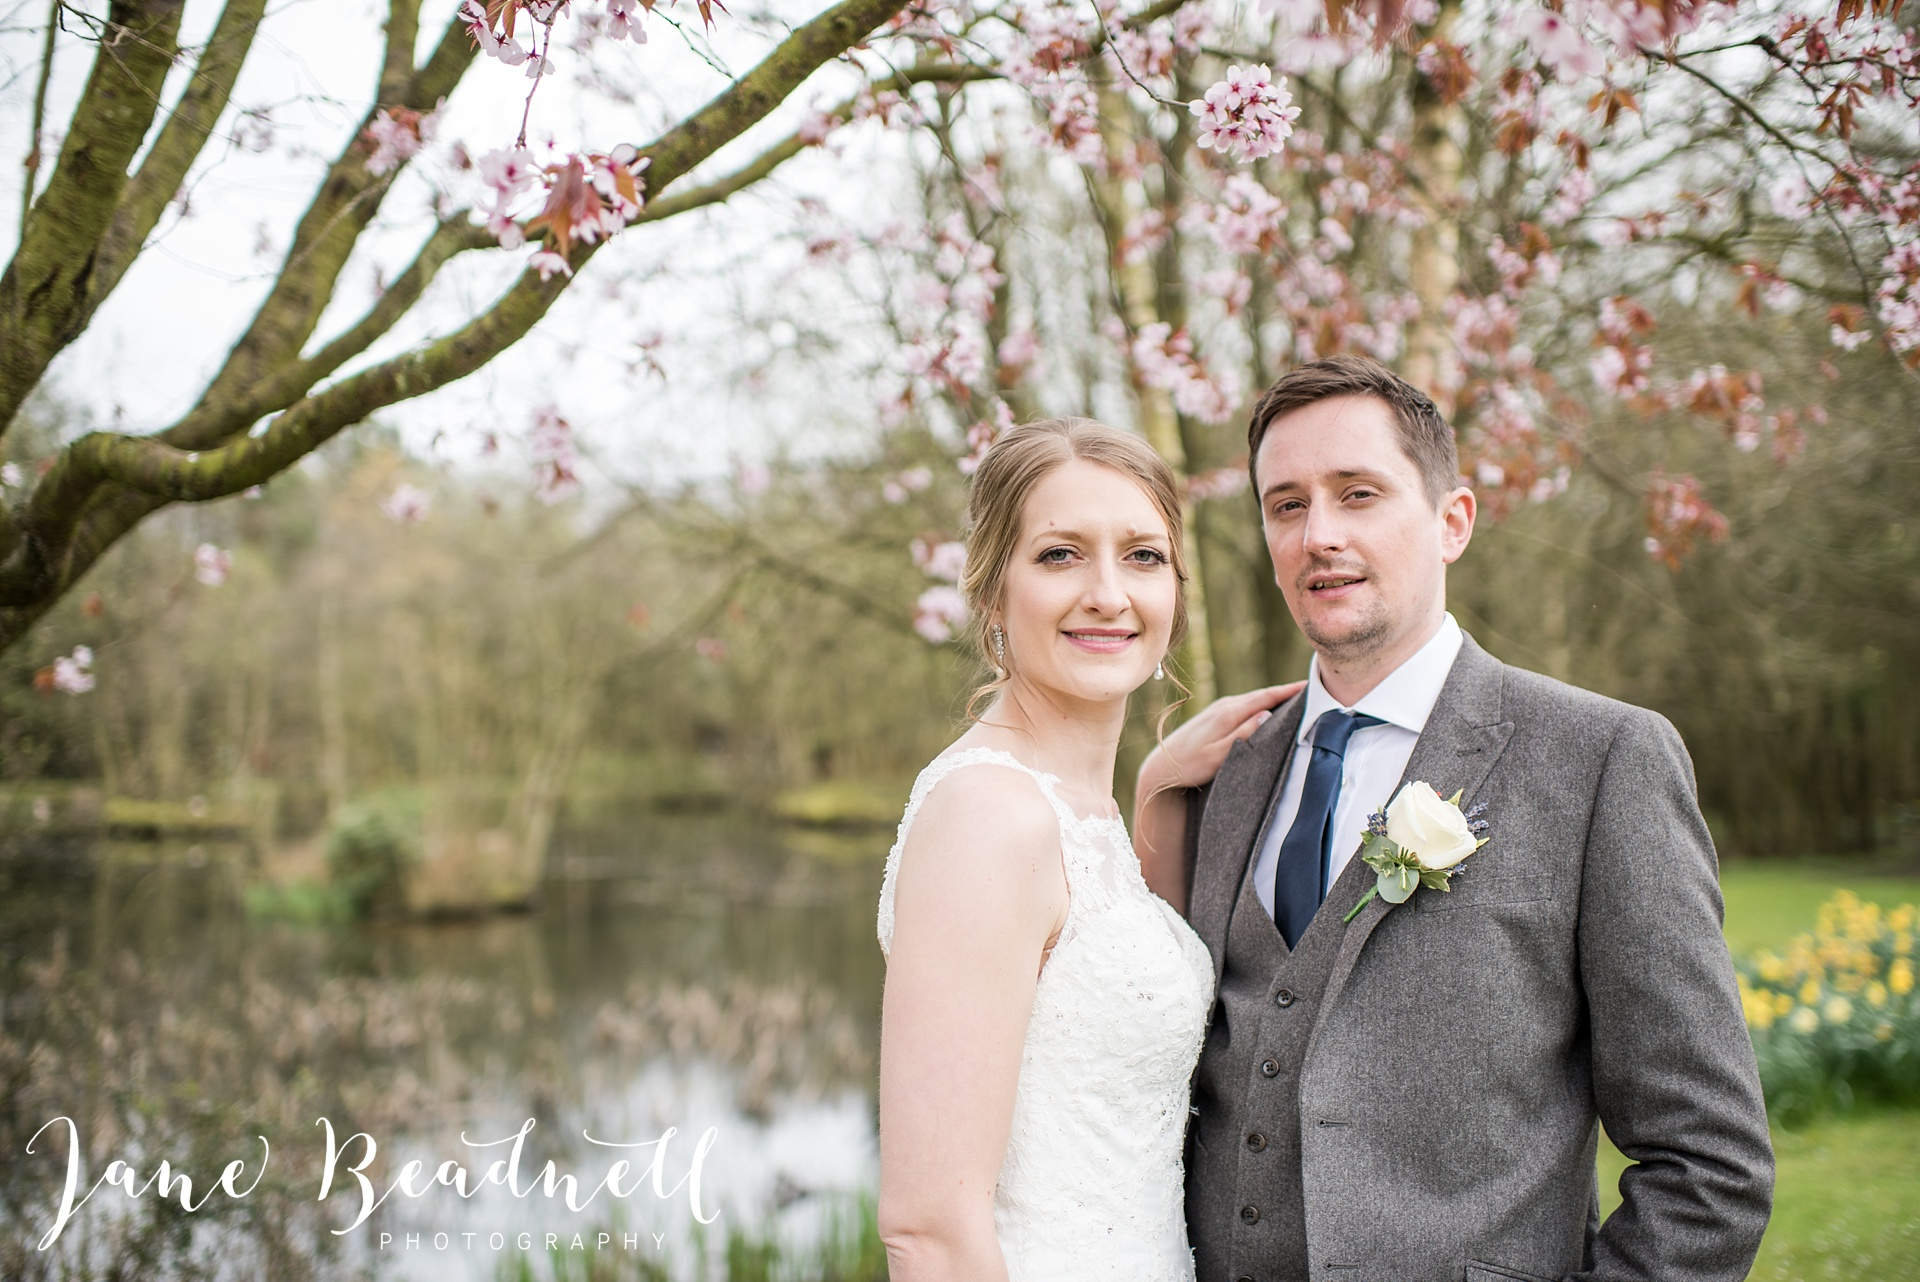 Otley Chevin Lodge wedding photography by Jane Beadnell Photography Leeds_0089